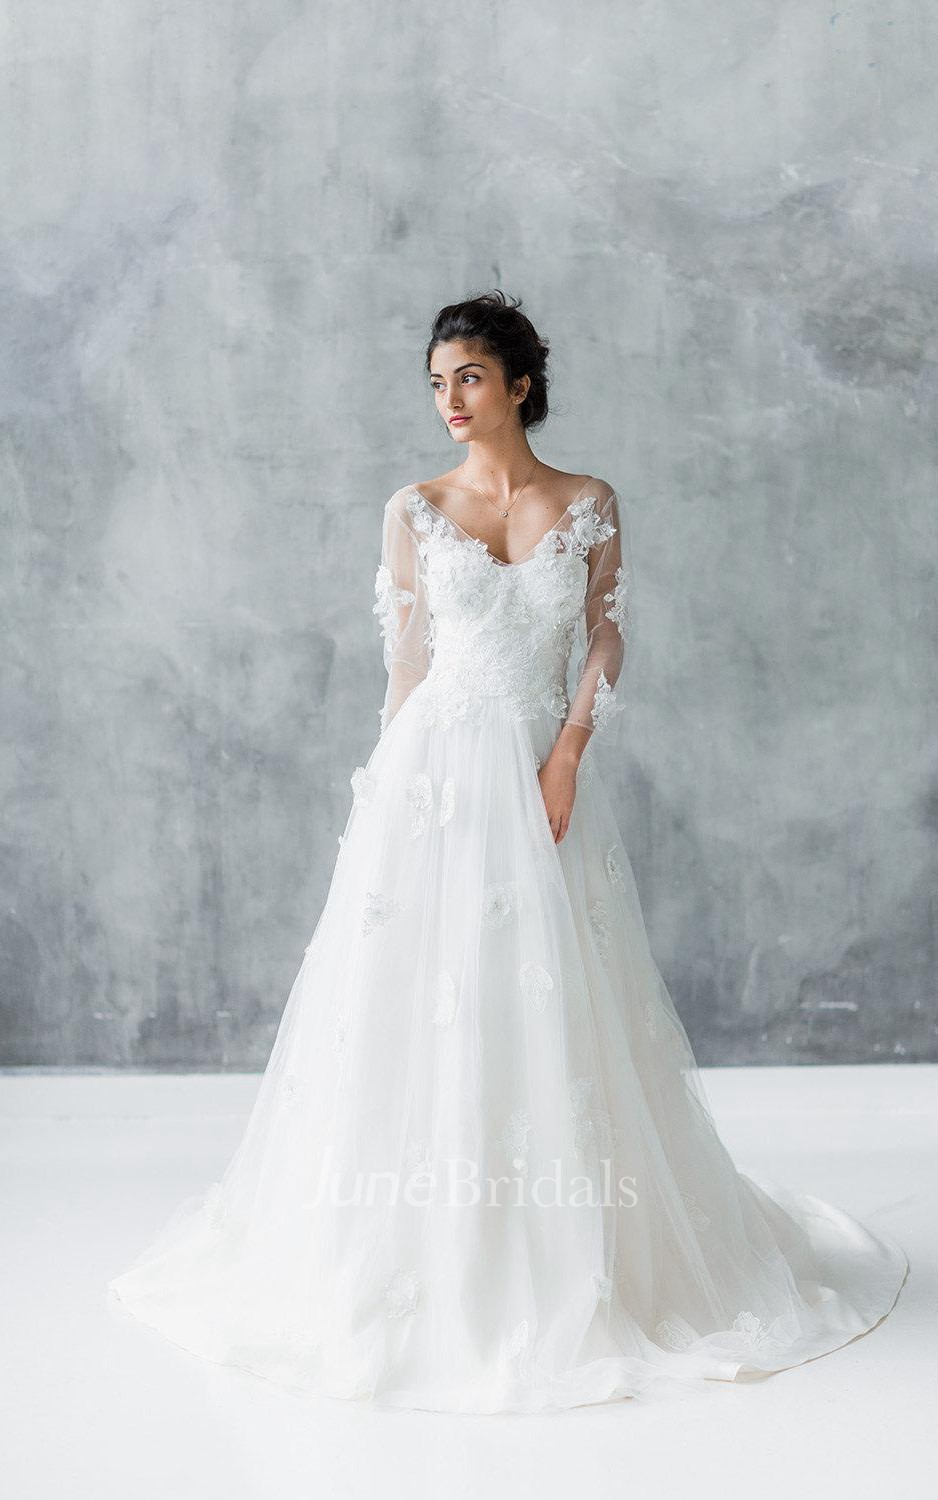 Long Sleeve Tulle Lace Weddig Dress With Beading June